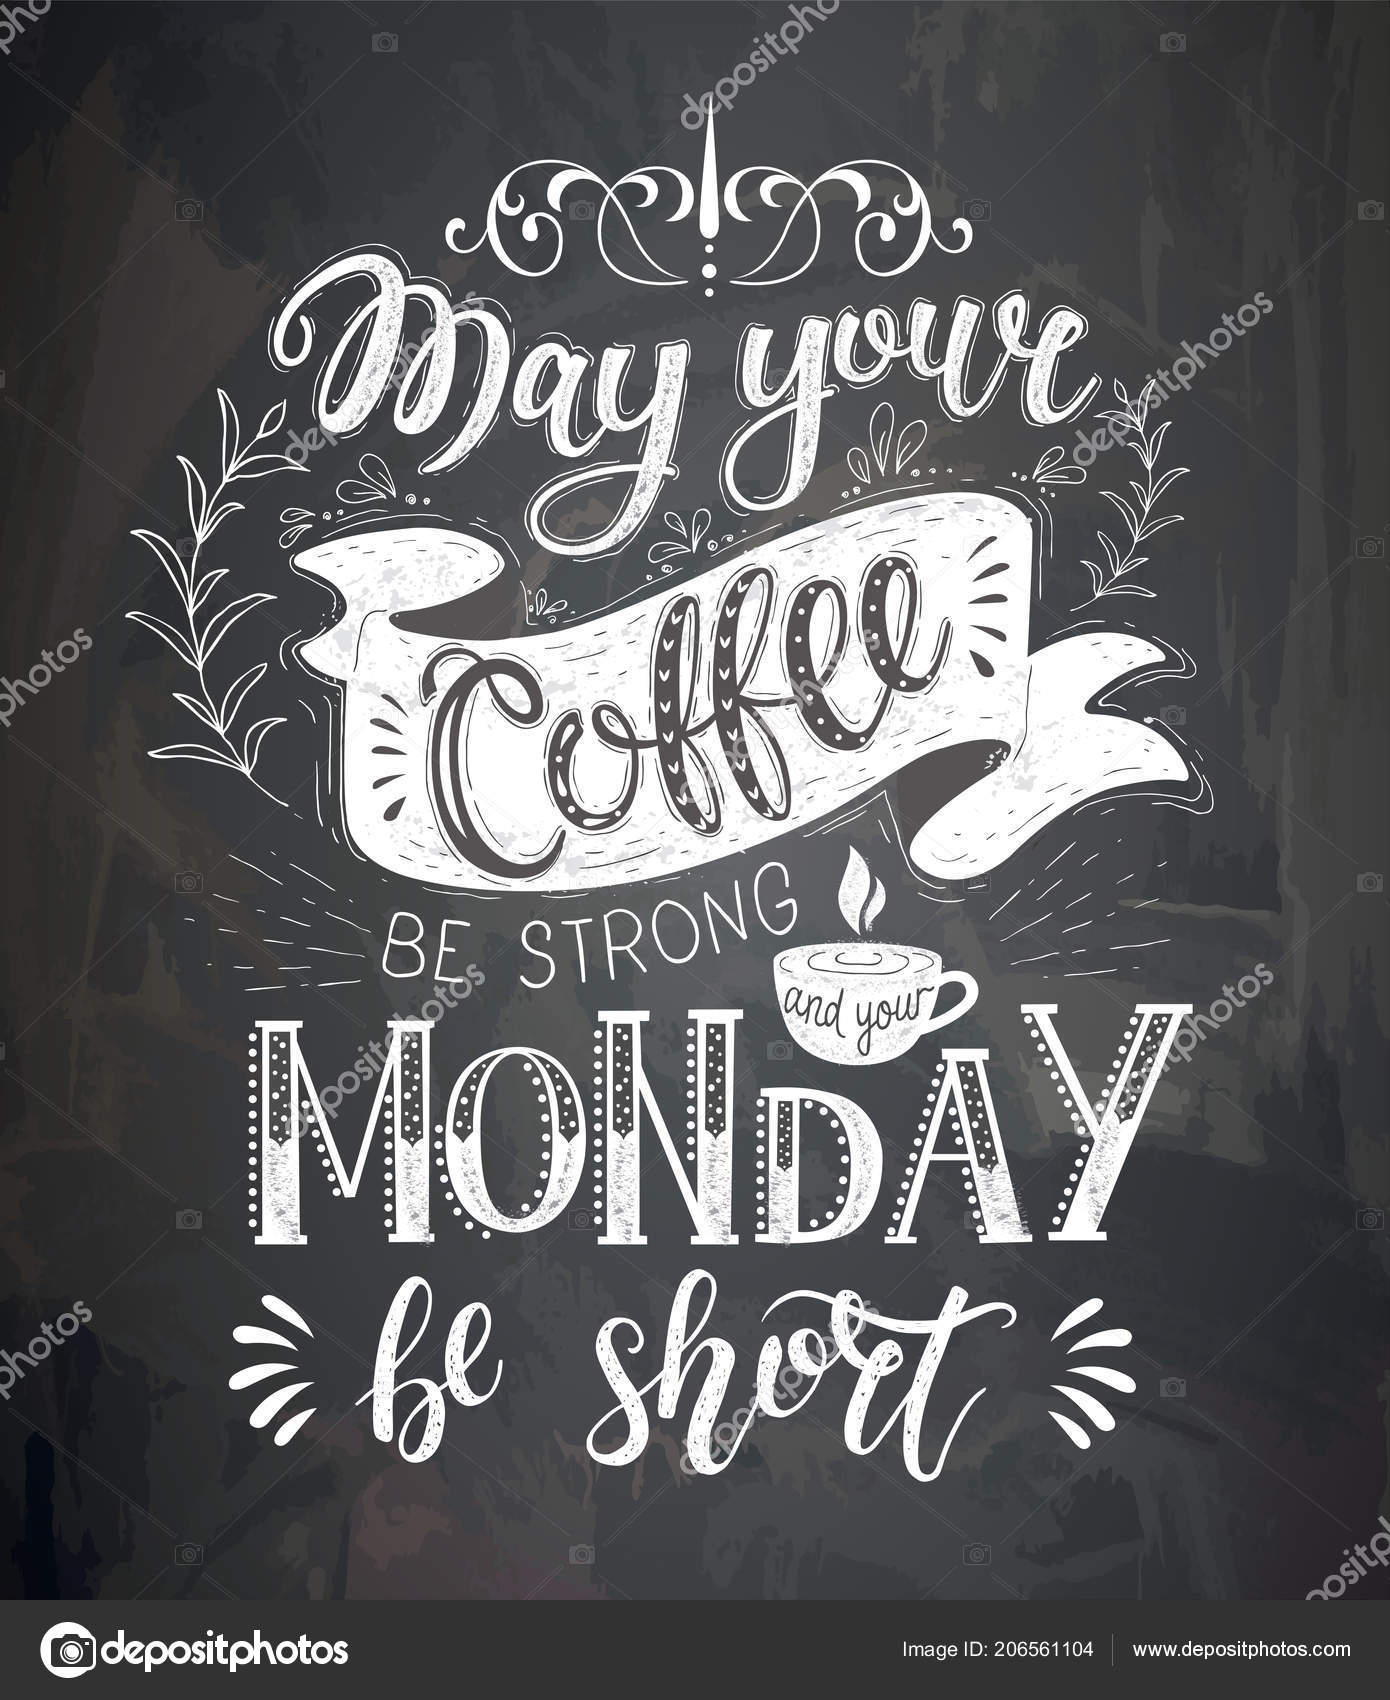 Coffee Chalkboard Quotes Coffee Quotes On The Chalk Board Stock Vector C Nuraschka 206561104